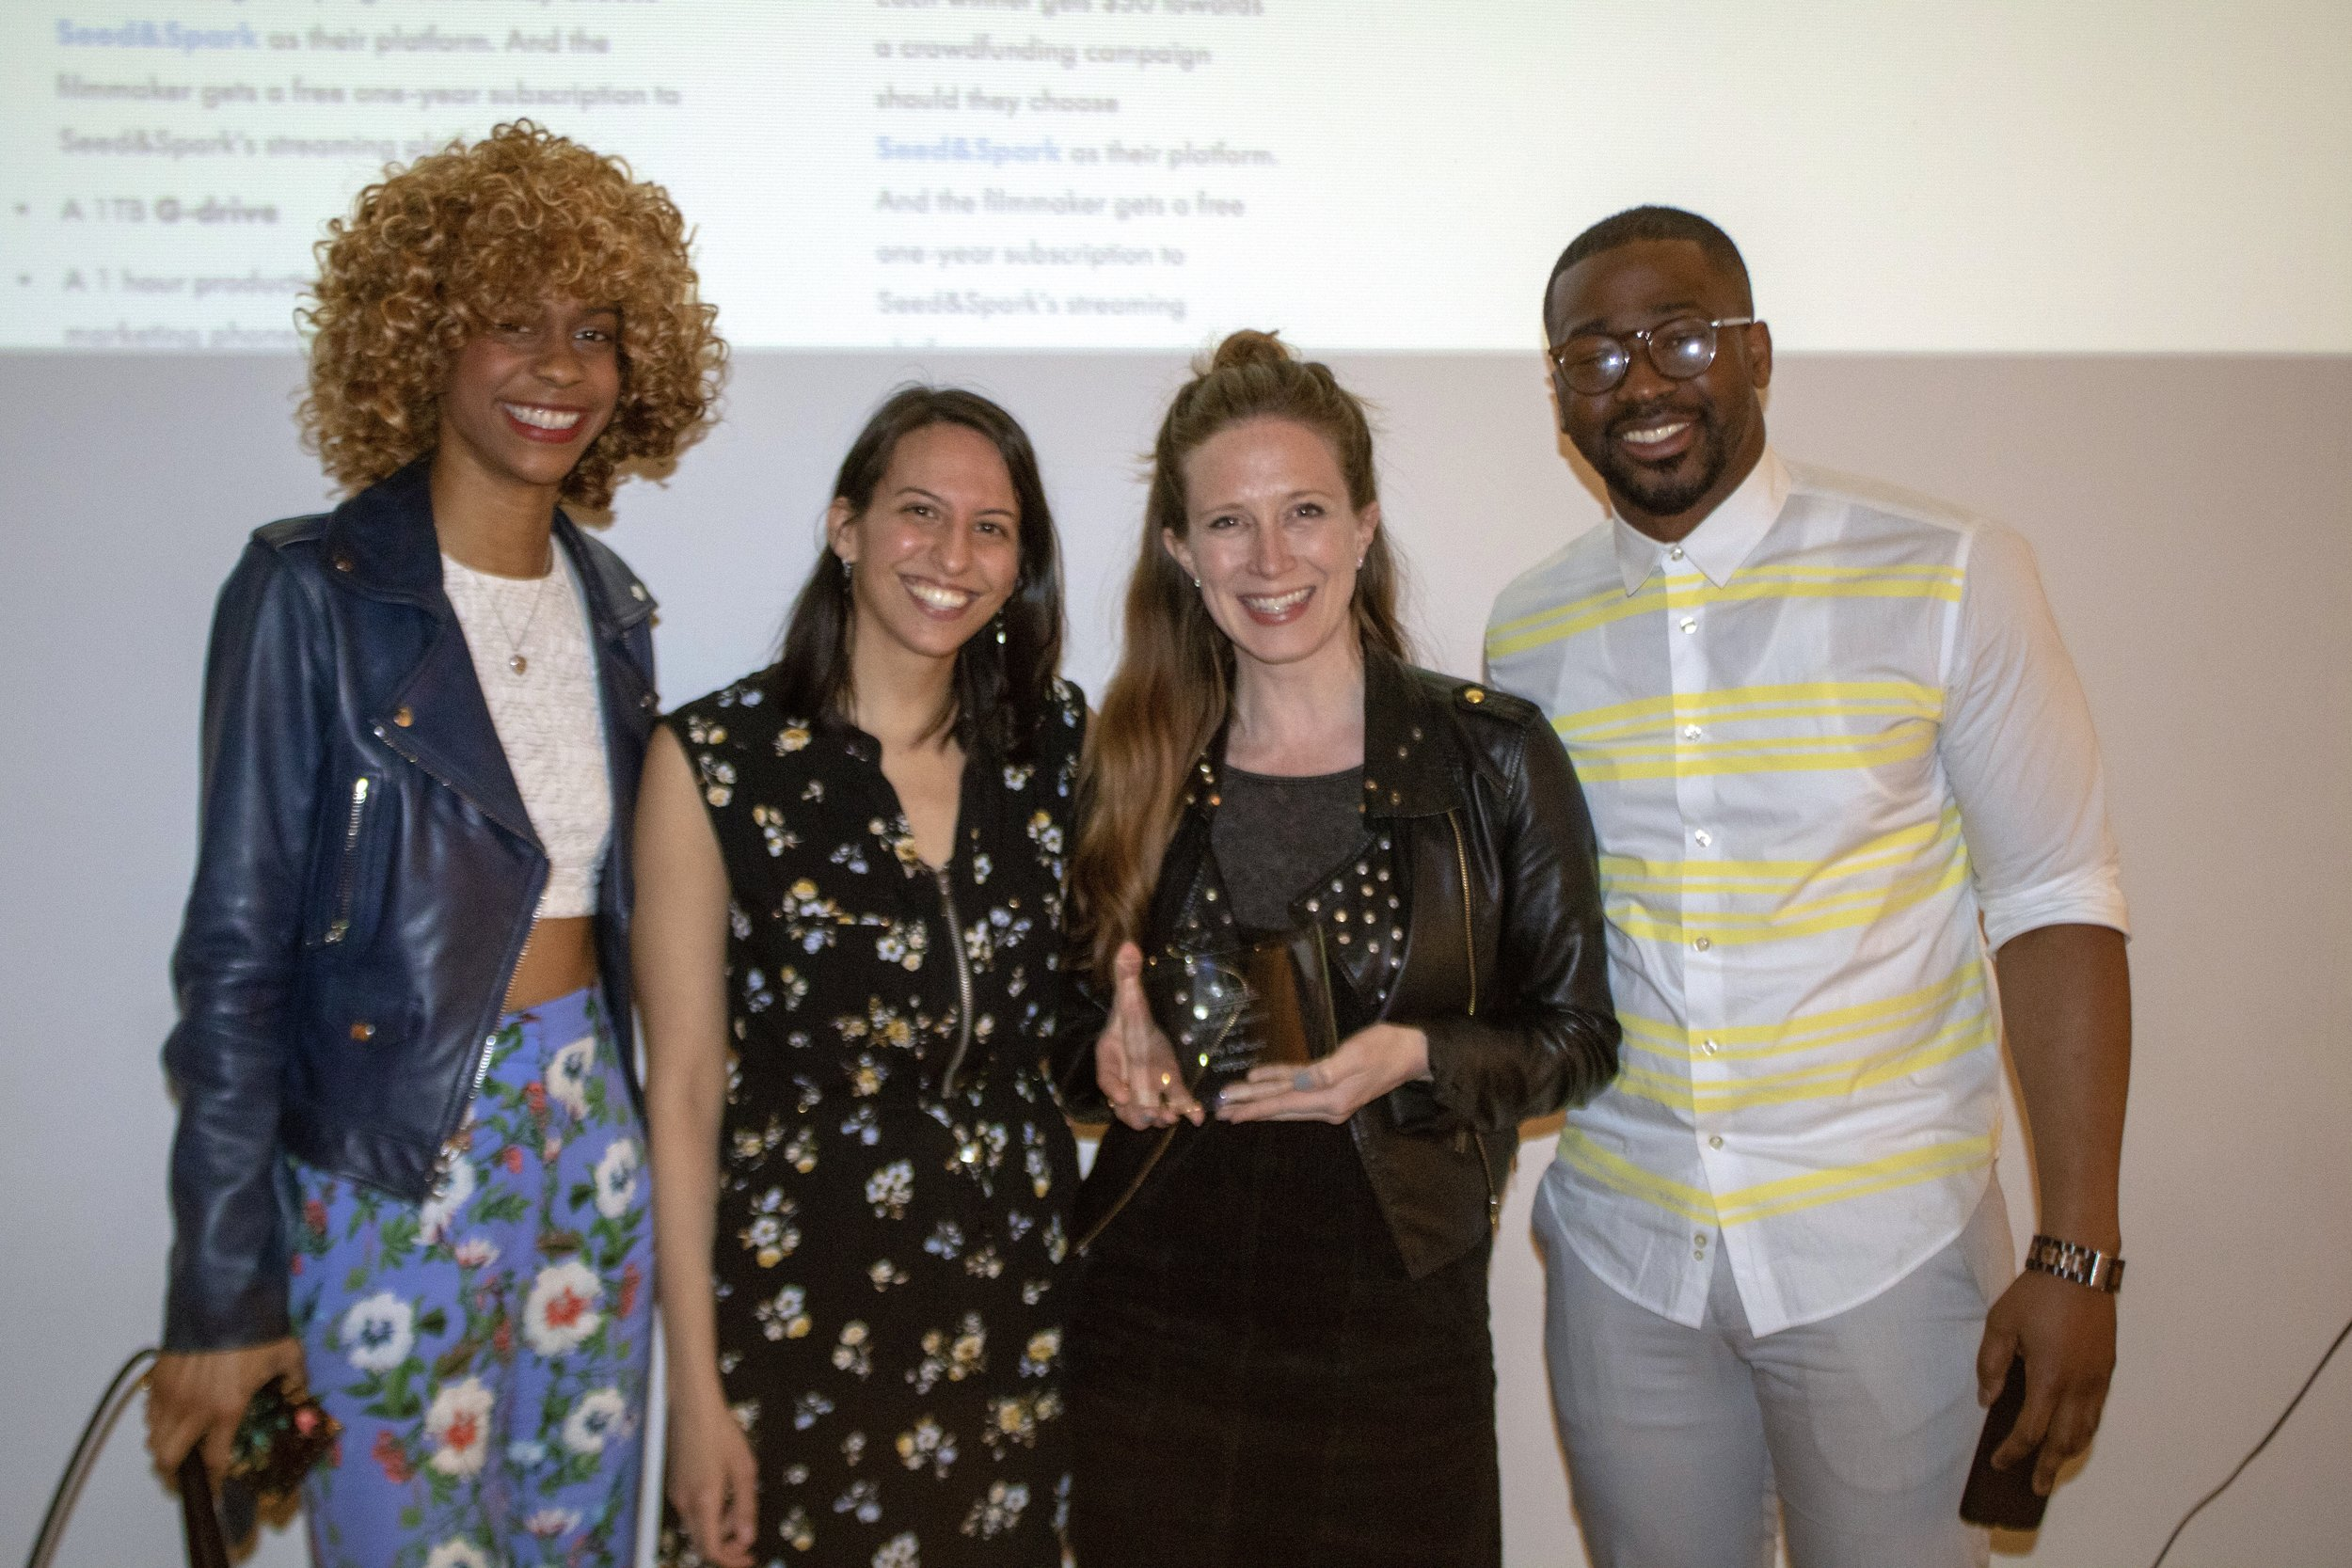 """BEST WRITER/DIRECTOR : """" AMYDEE """" (Amy DePaola - Wins $50 towards a  Seed&Spark  campaign, a free one-year subscription to Seed&Spark's streaming platform, and script coverage from the CongestedCat team of one future short screenplay."""